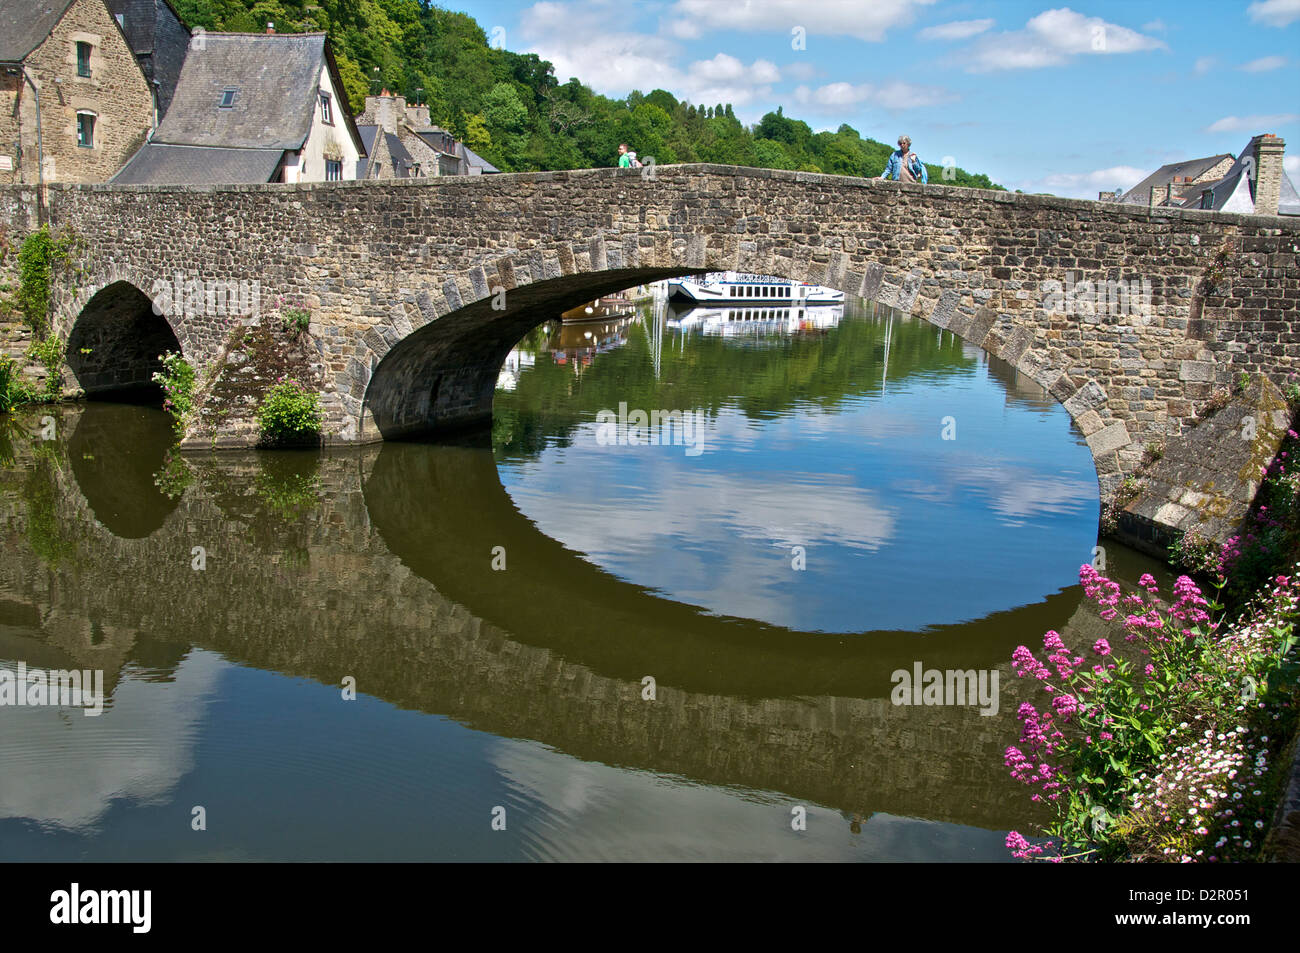 The Stone Bridge over River Rance, Dinan, Brittany, France, Europe - Stock Image